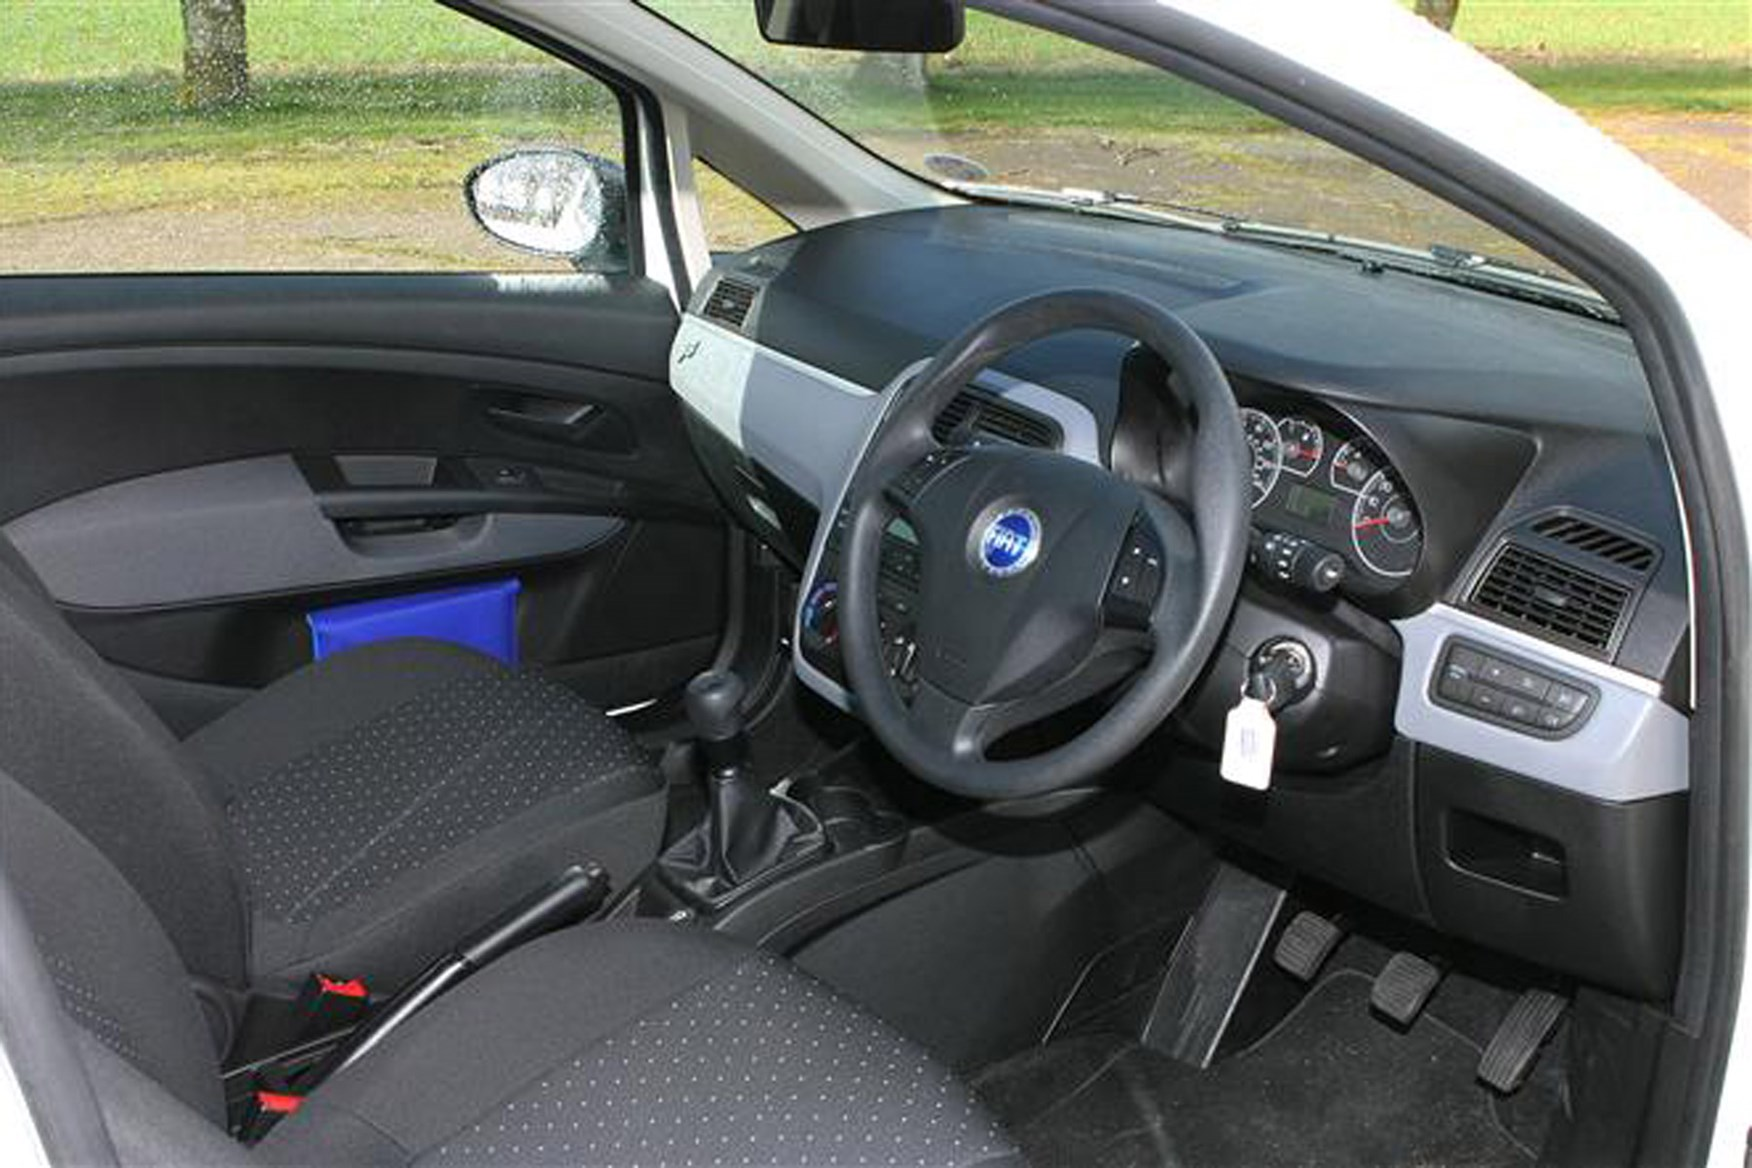 Fiat Grande Punto review on Parkers Vans - interior